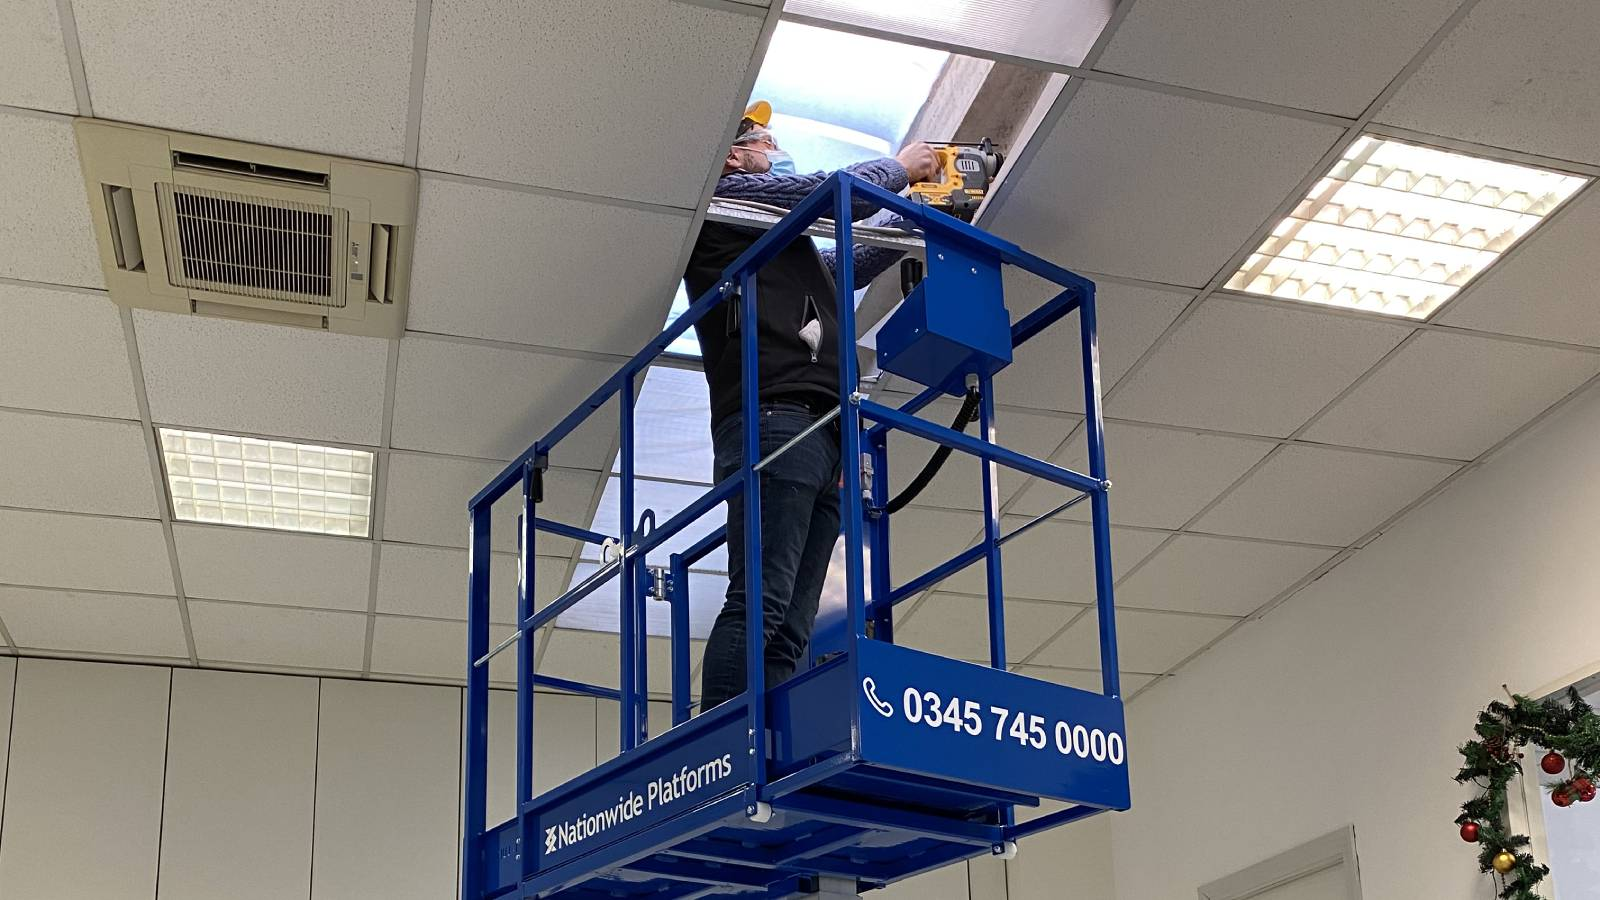 Nationwide Platforms invests in 20 innovative Bravi low level access platforms to accelerate fit-out work